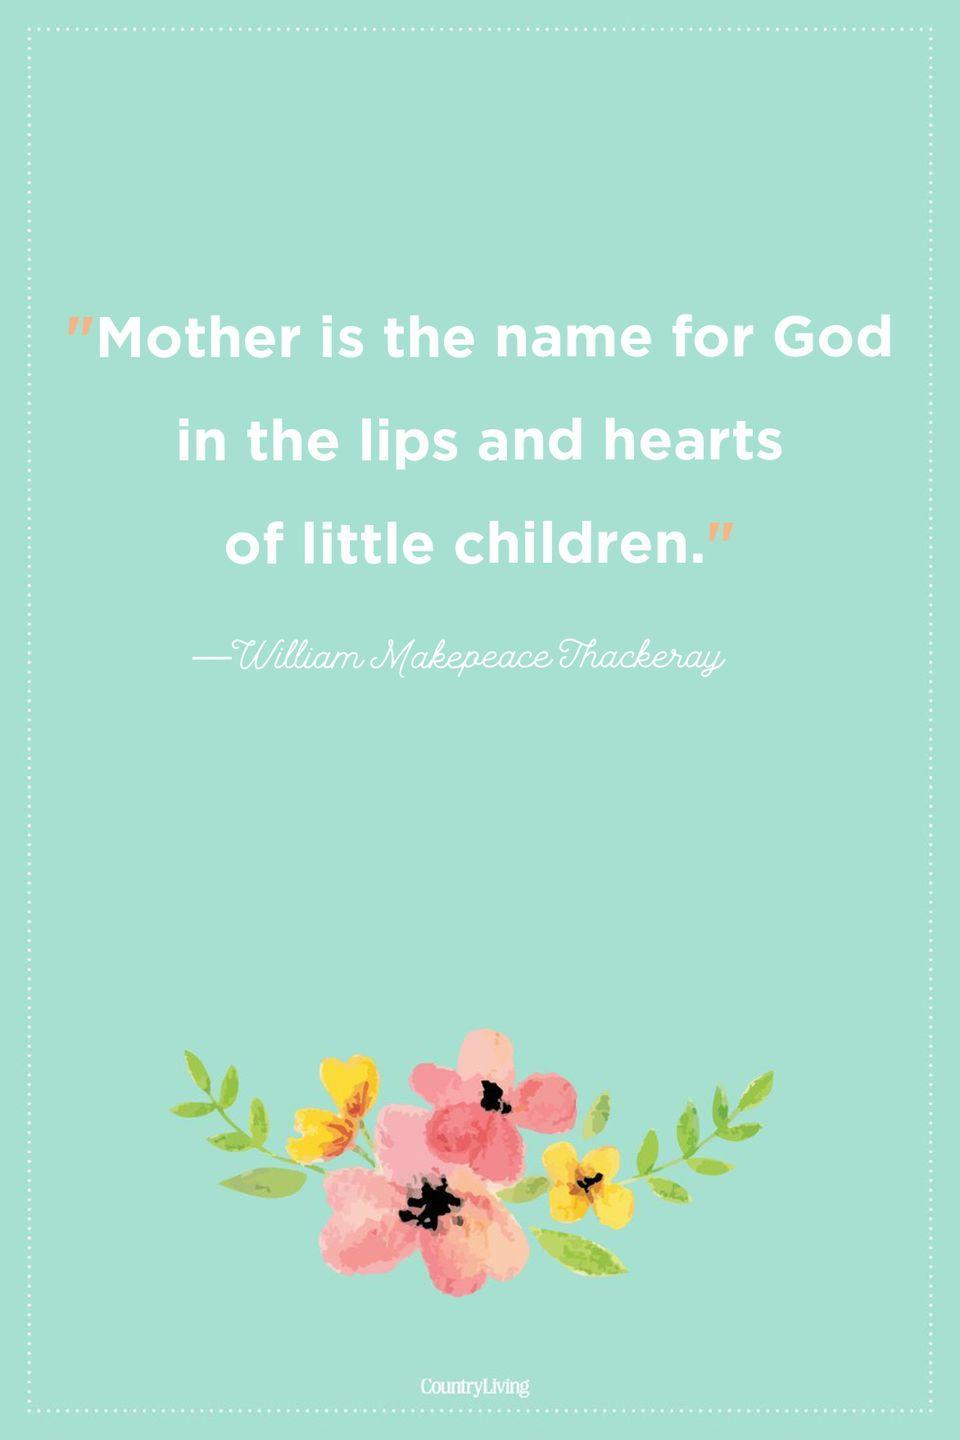 "<p>""Mother is the name for God in the lips and hearts of little children.""</p>"